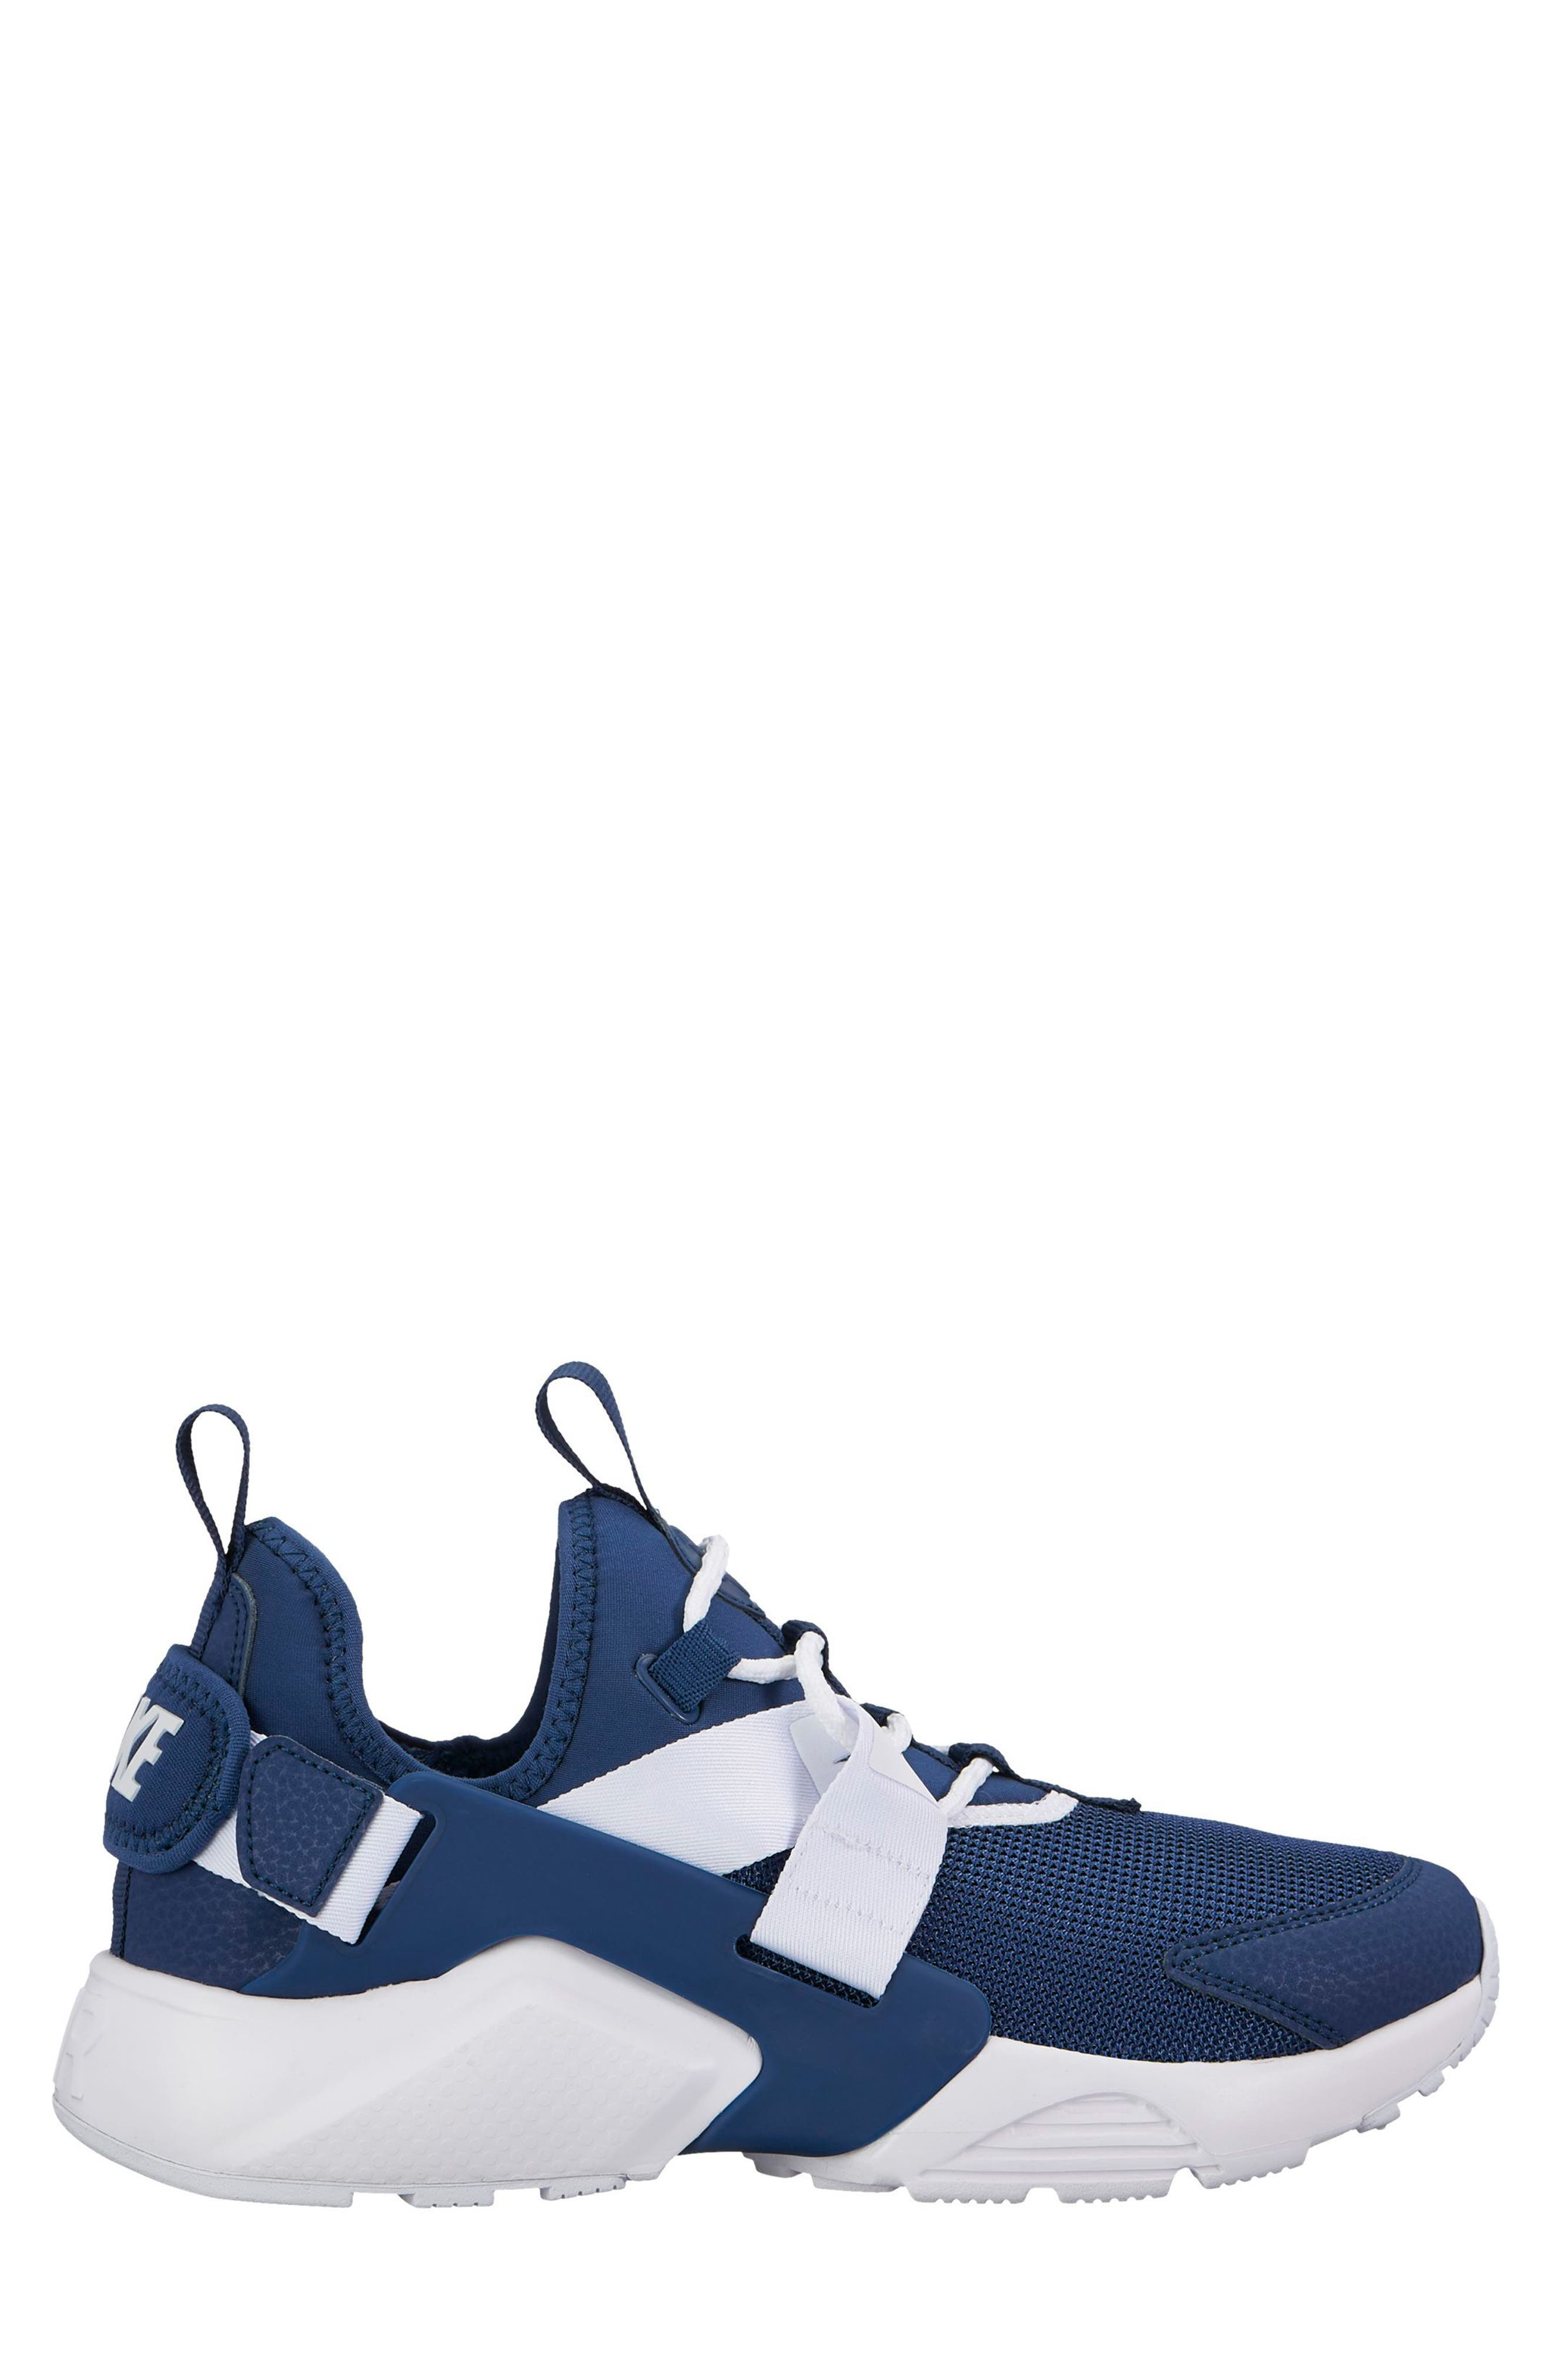 Nike Air Huarache City Low Sneaker (Women)